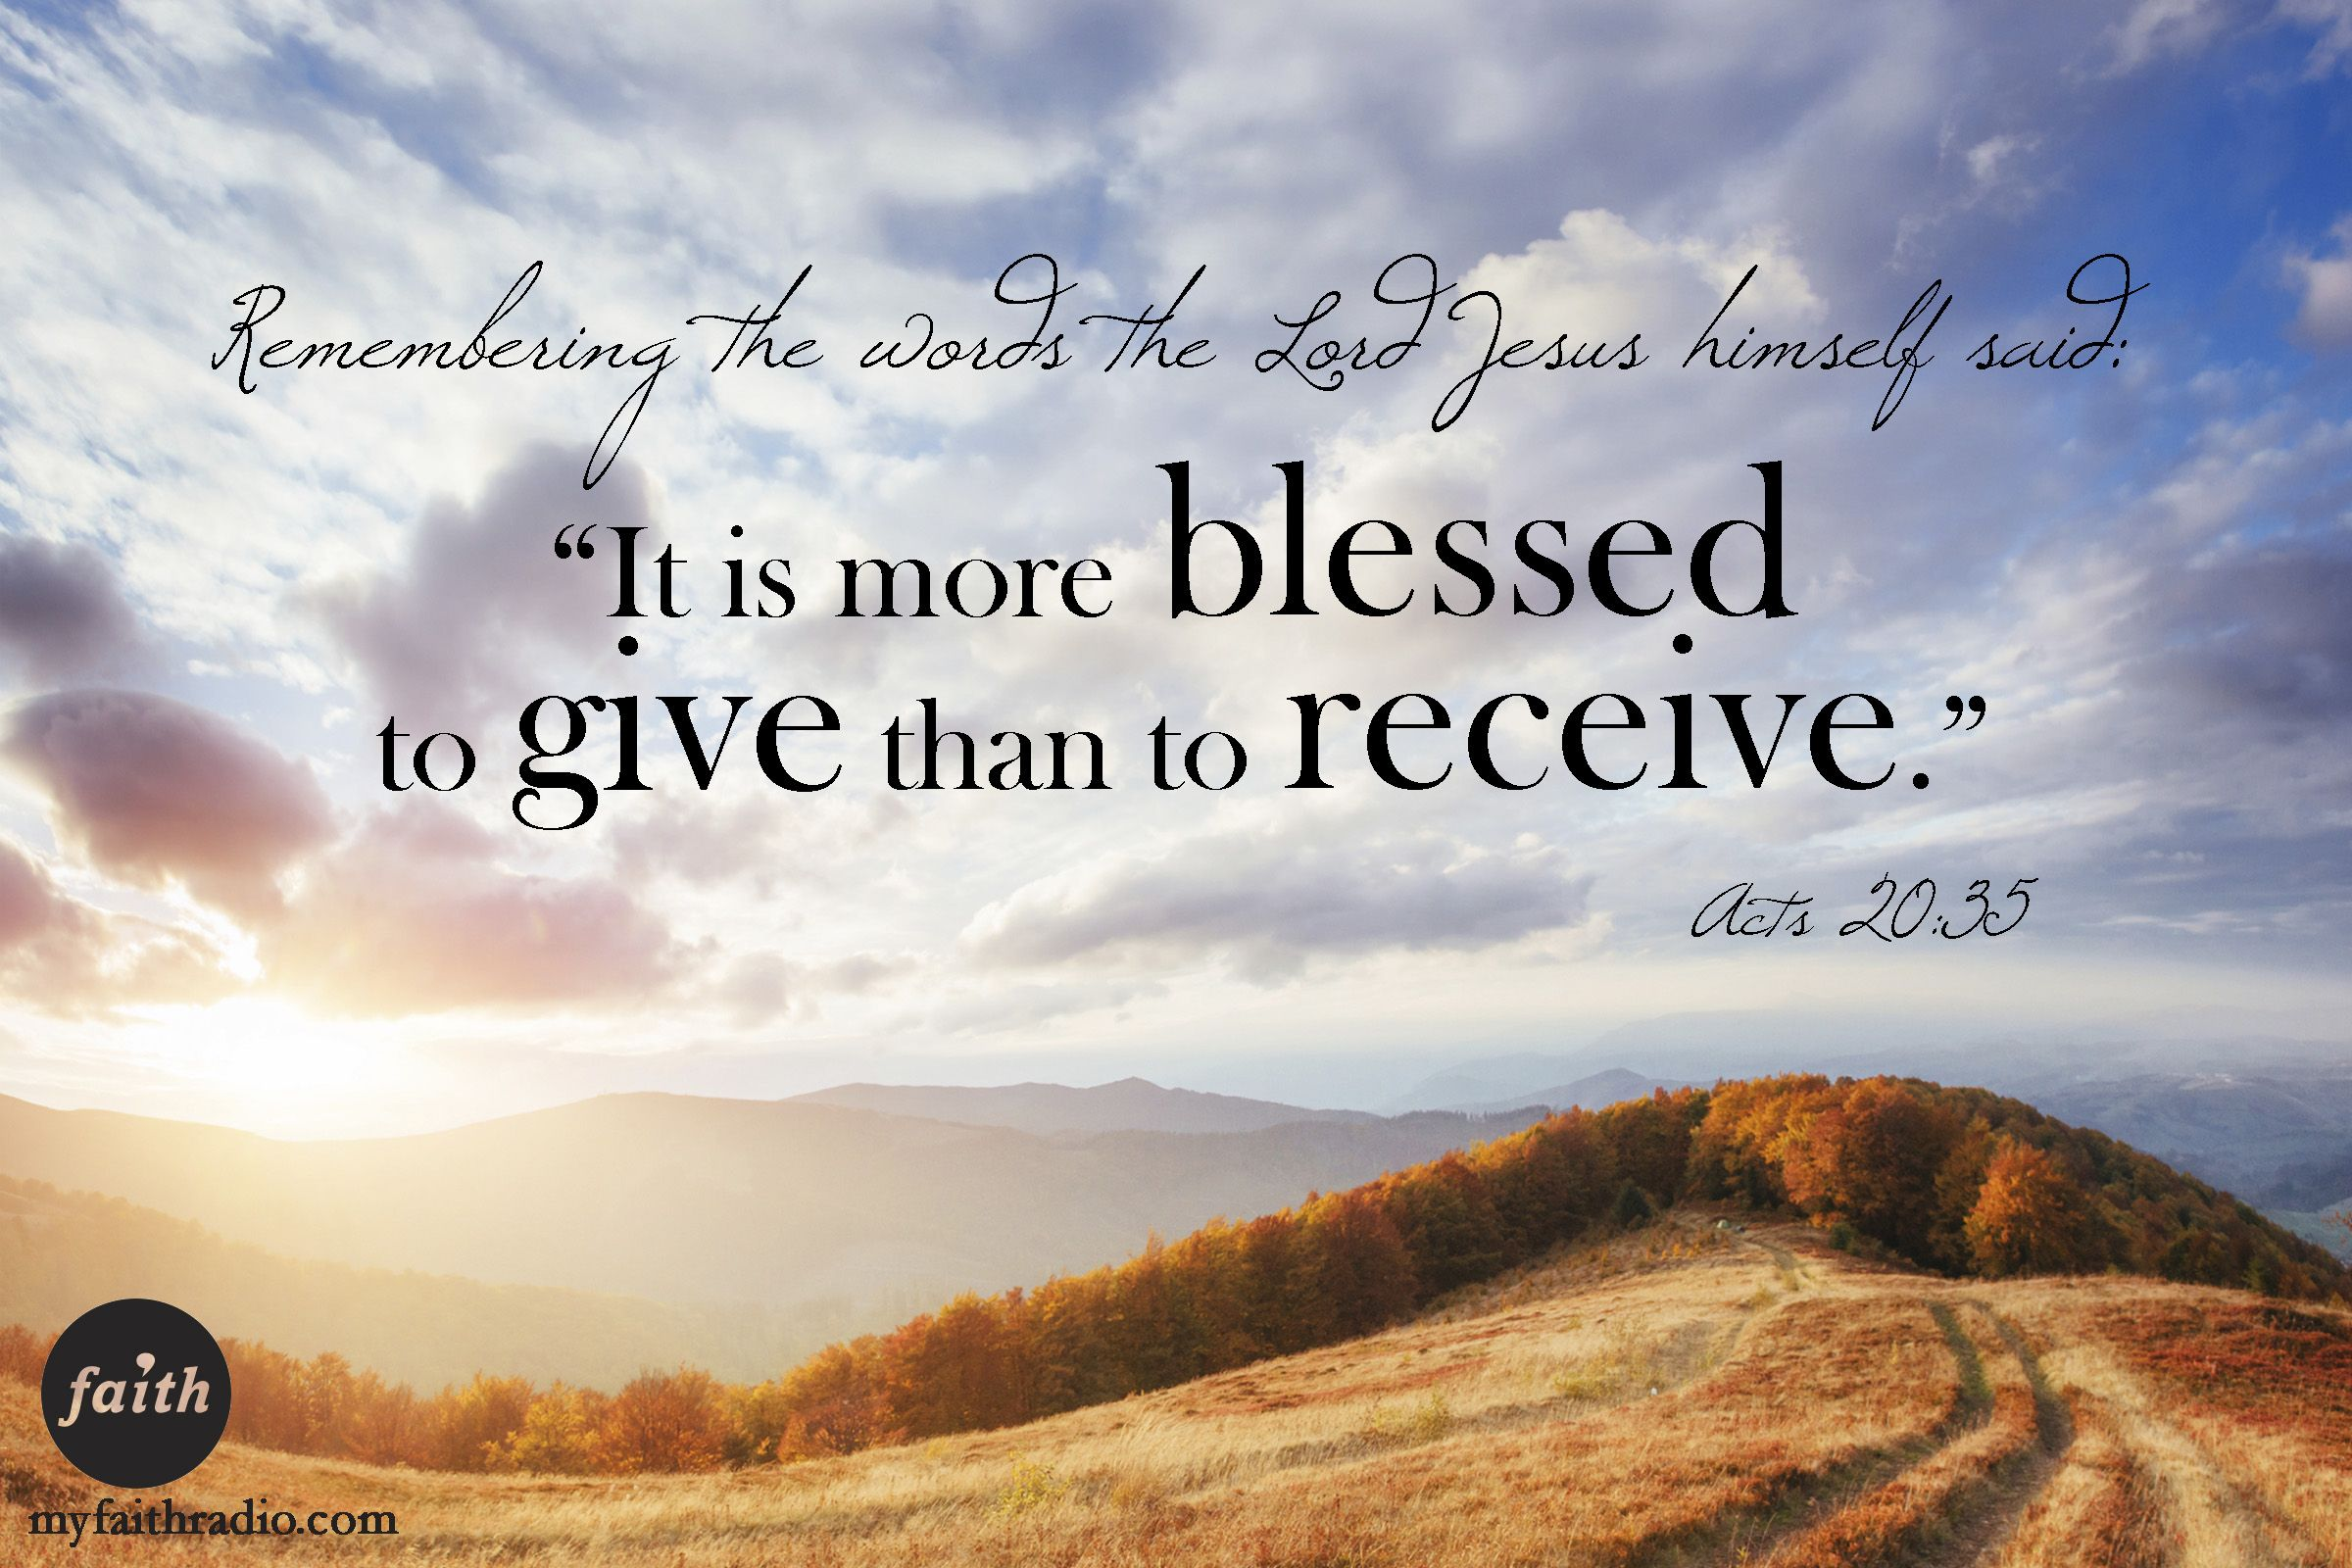 acts 20:35it is more blessed to give than to receive. | bible